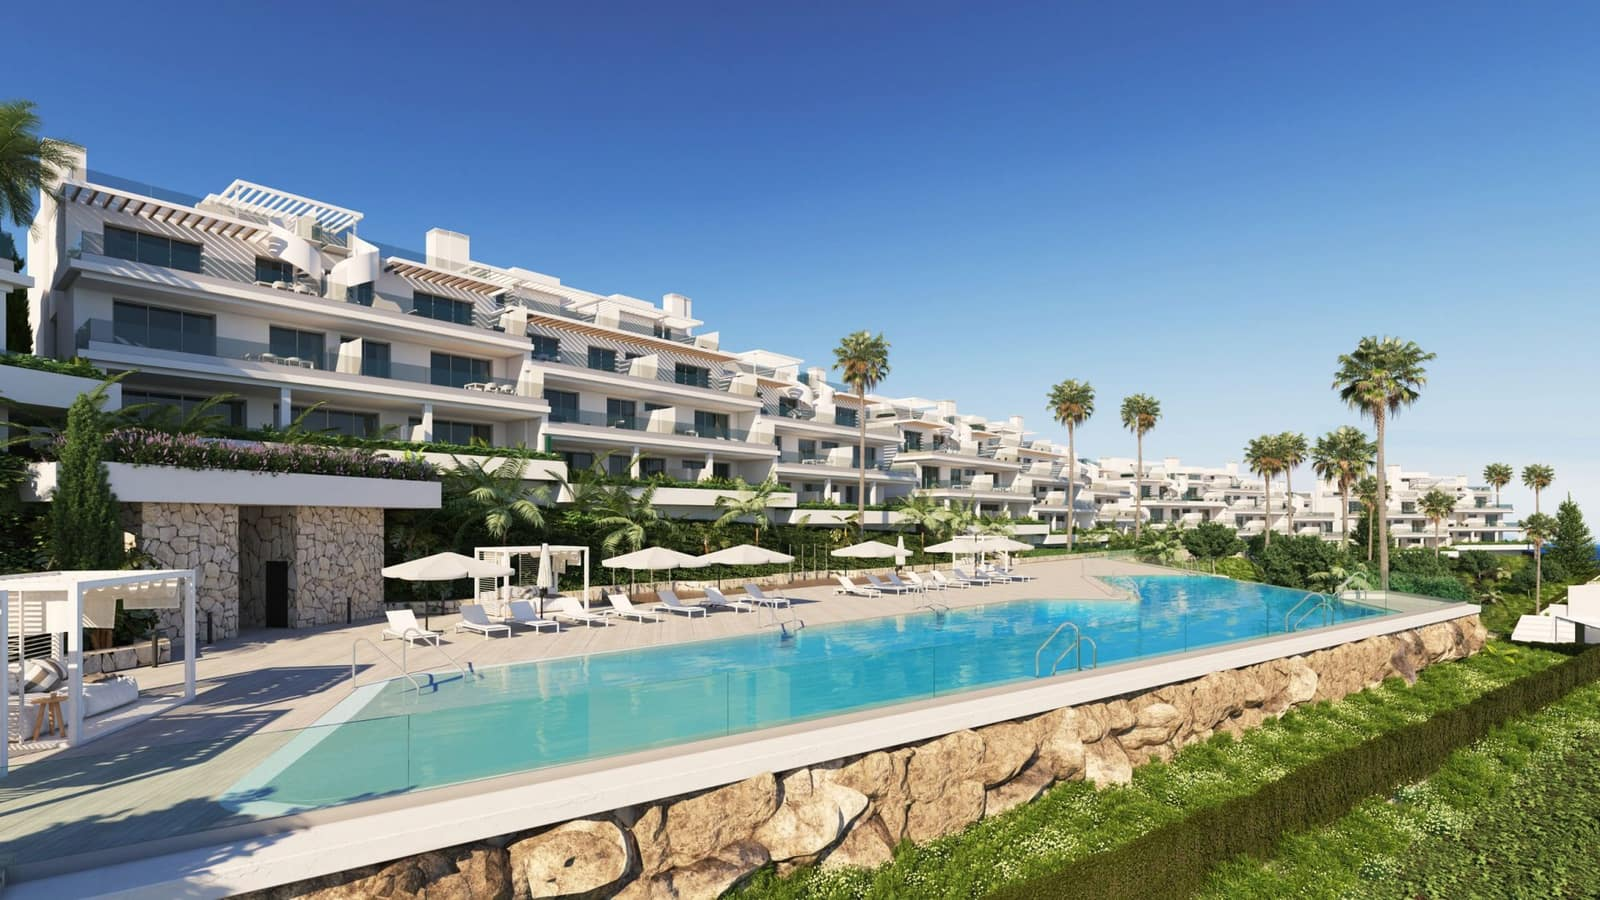 2 bedroom Apartment for sale in Marbella with pool garage - € 270,000 (Ref: 4707629)